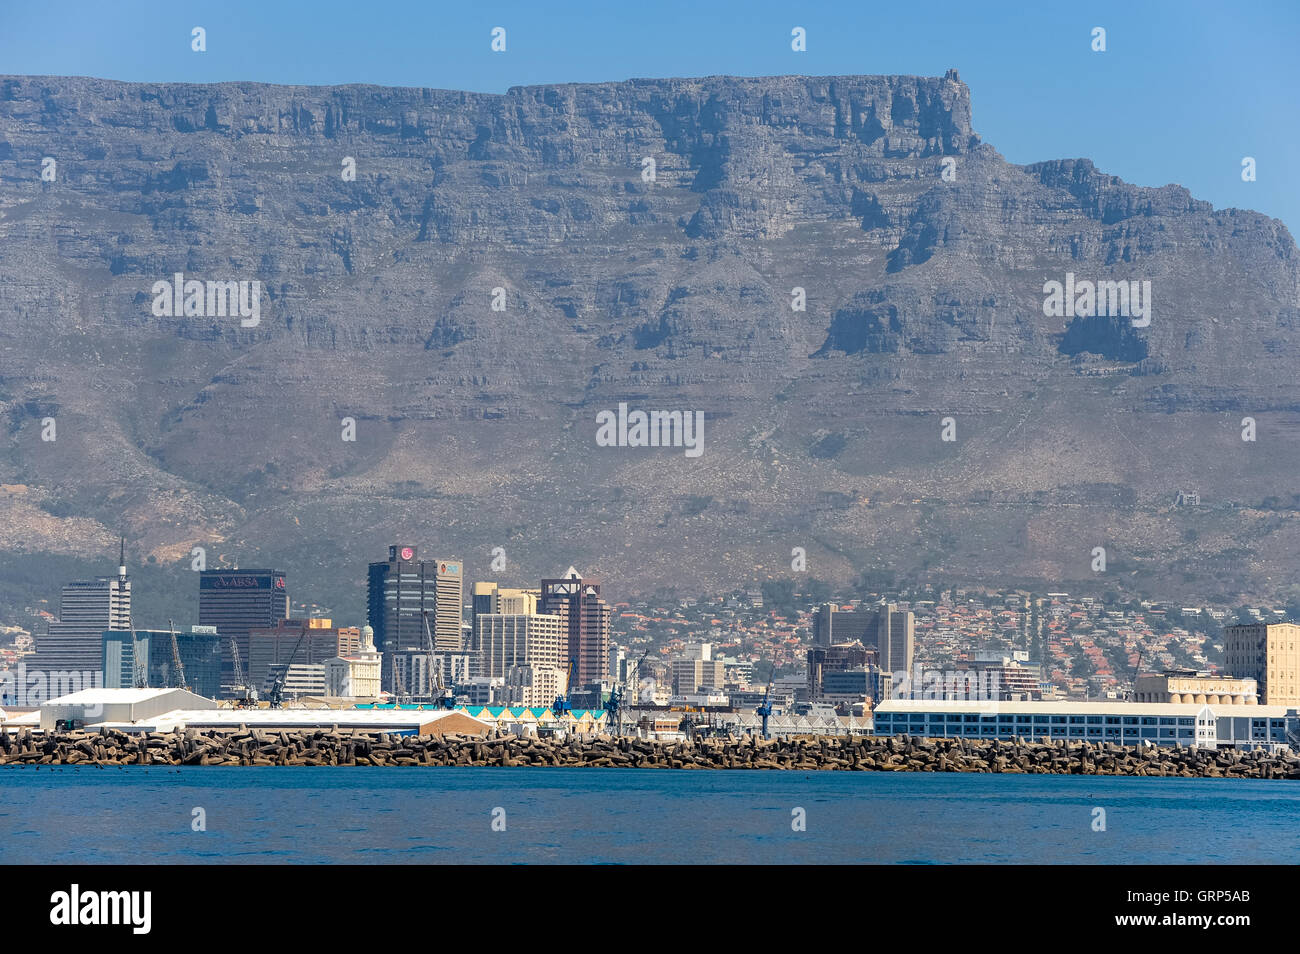 On the way from Robben Island to Waterfront in Cape Town, South Africa. - Stock Image